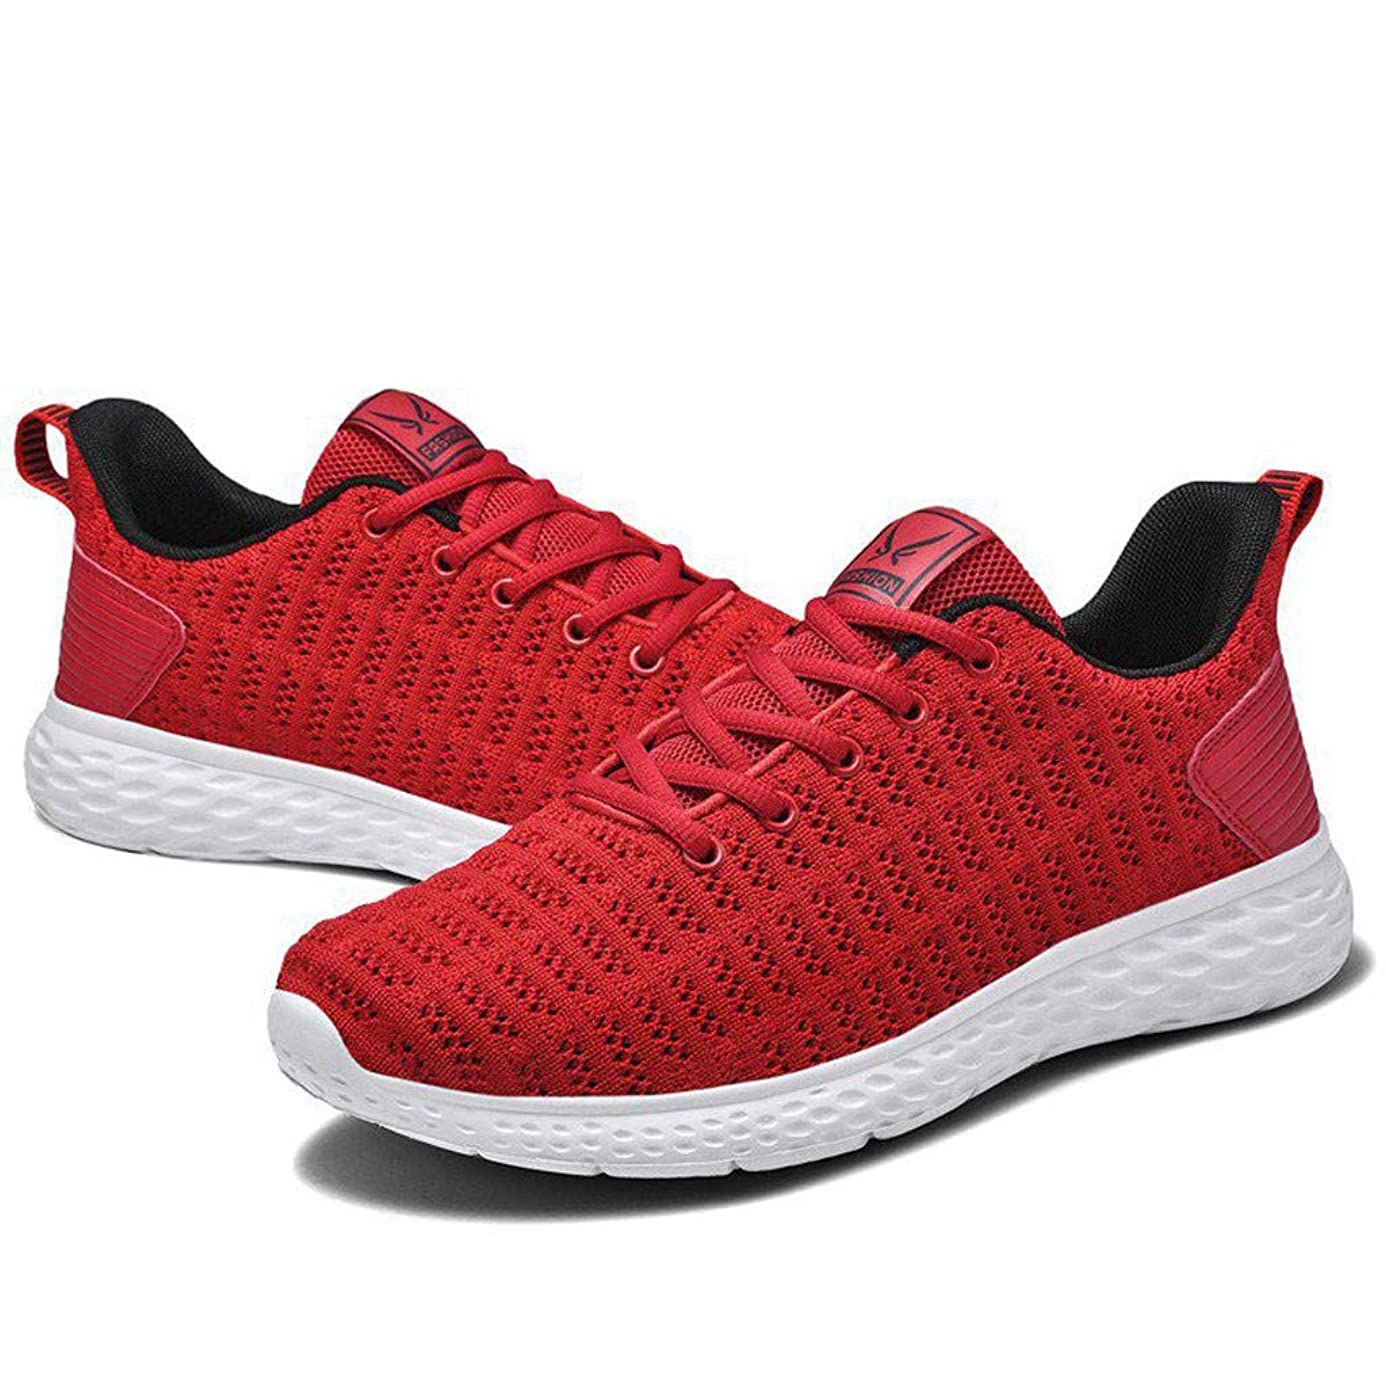 Couple Mesh Sports Shoes,Mosunx Athletic Women Hollow Breathable Ultra Lightweight Lace Up Sneakers Indoor Outdoor Gym Trail Solid Casual Running Shoes (8.5 M US, Red)